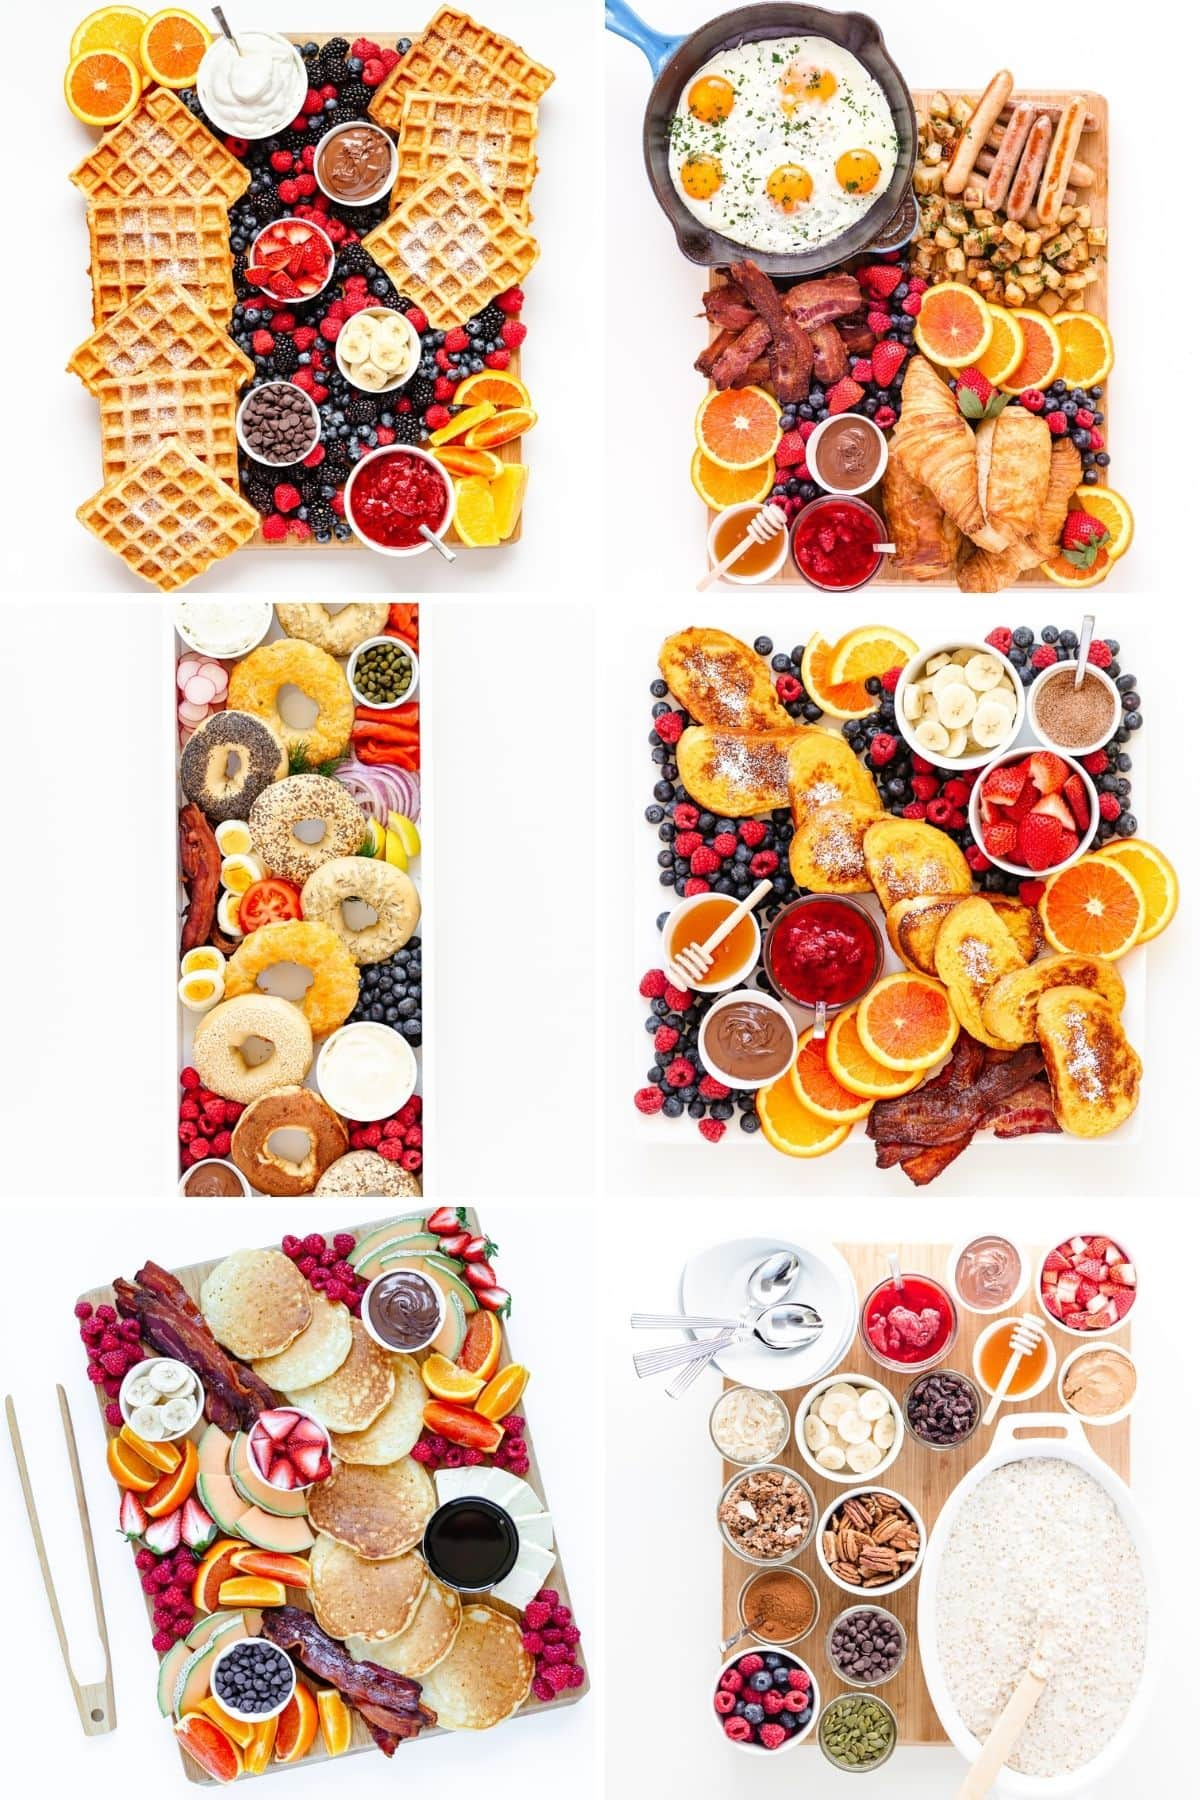 Collage of six different brunch board ideas.